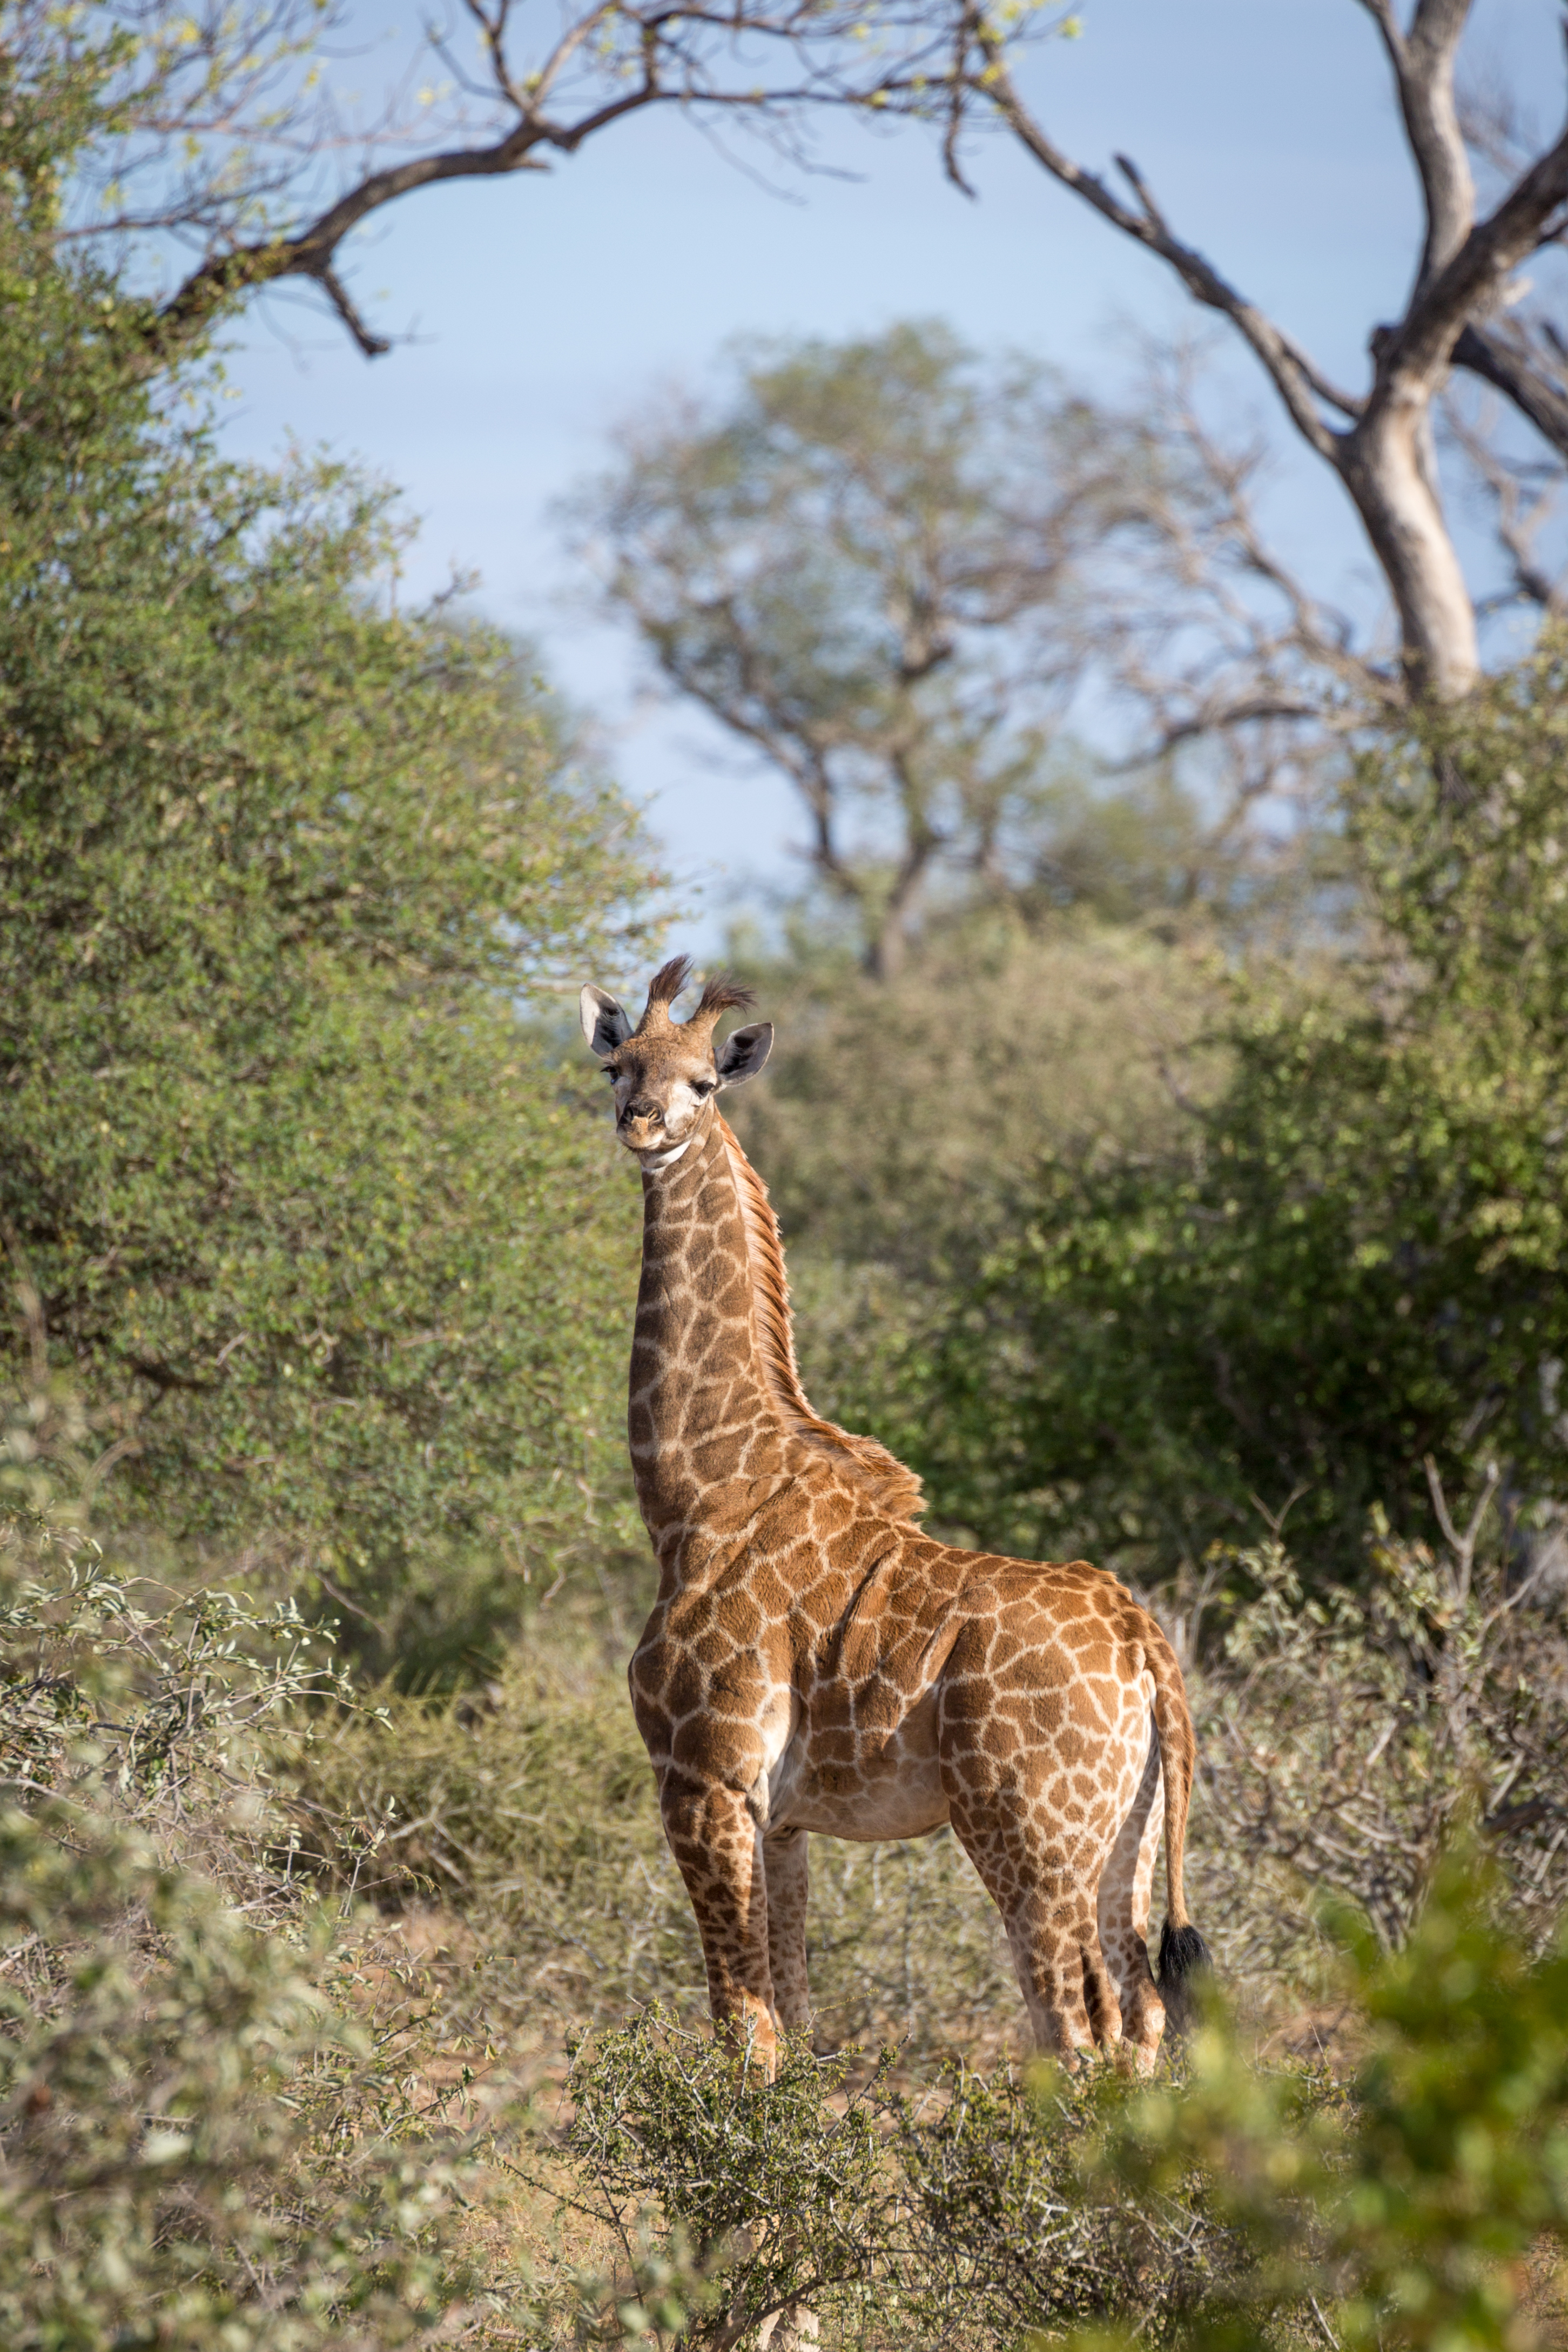 Cape Giraffe, Timbavati Game Reserve, South Africa